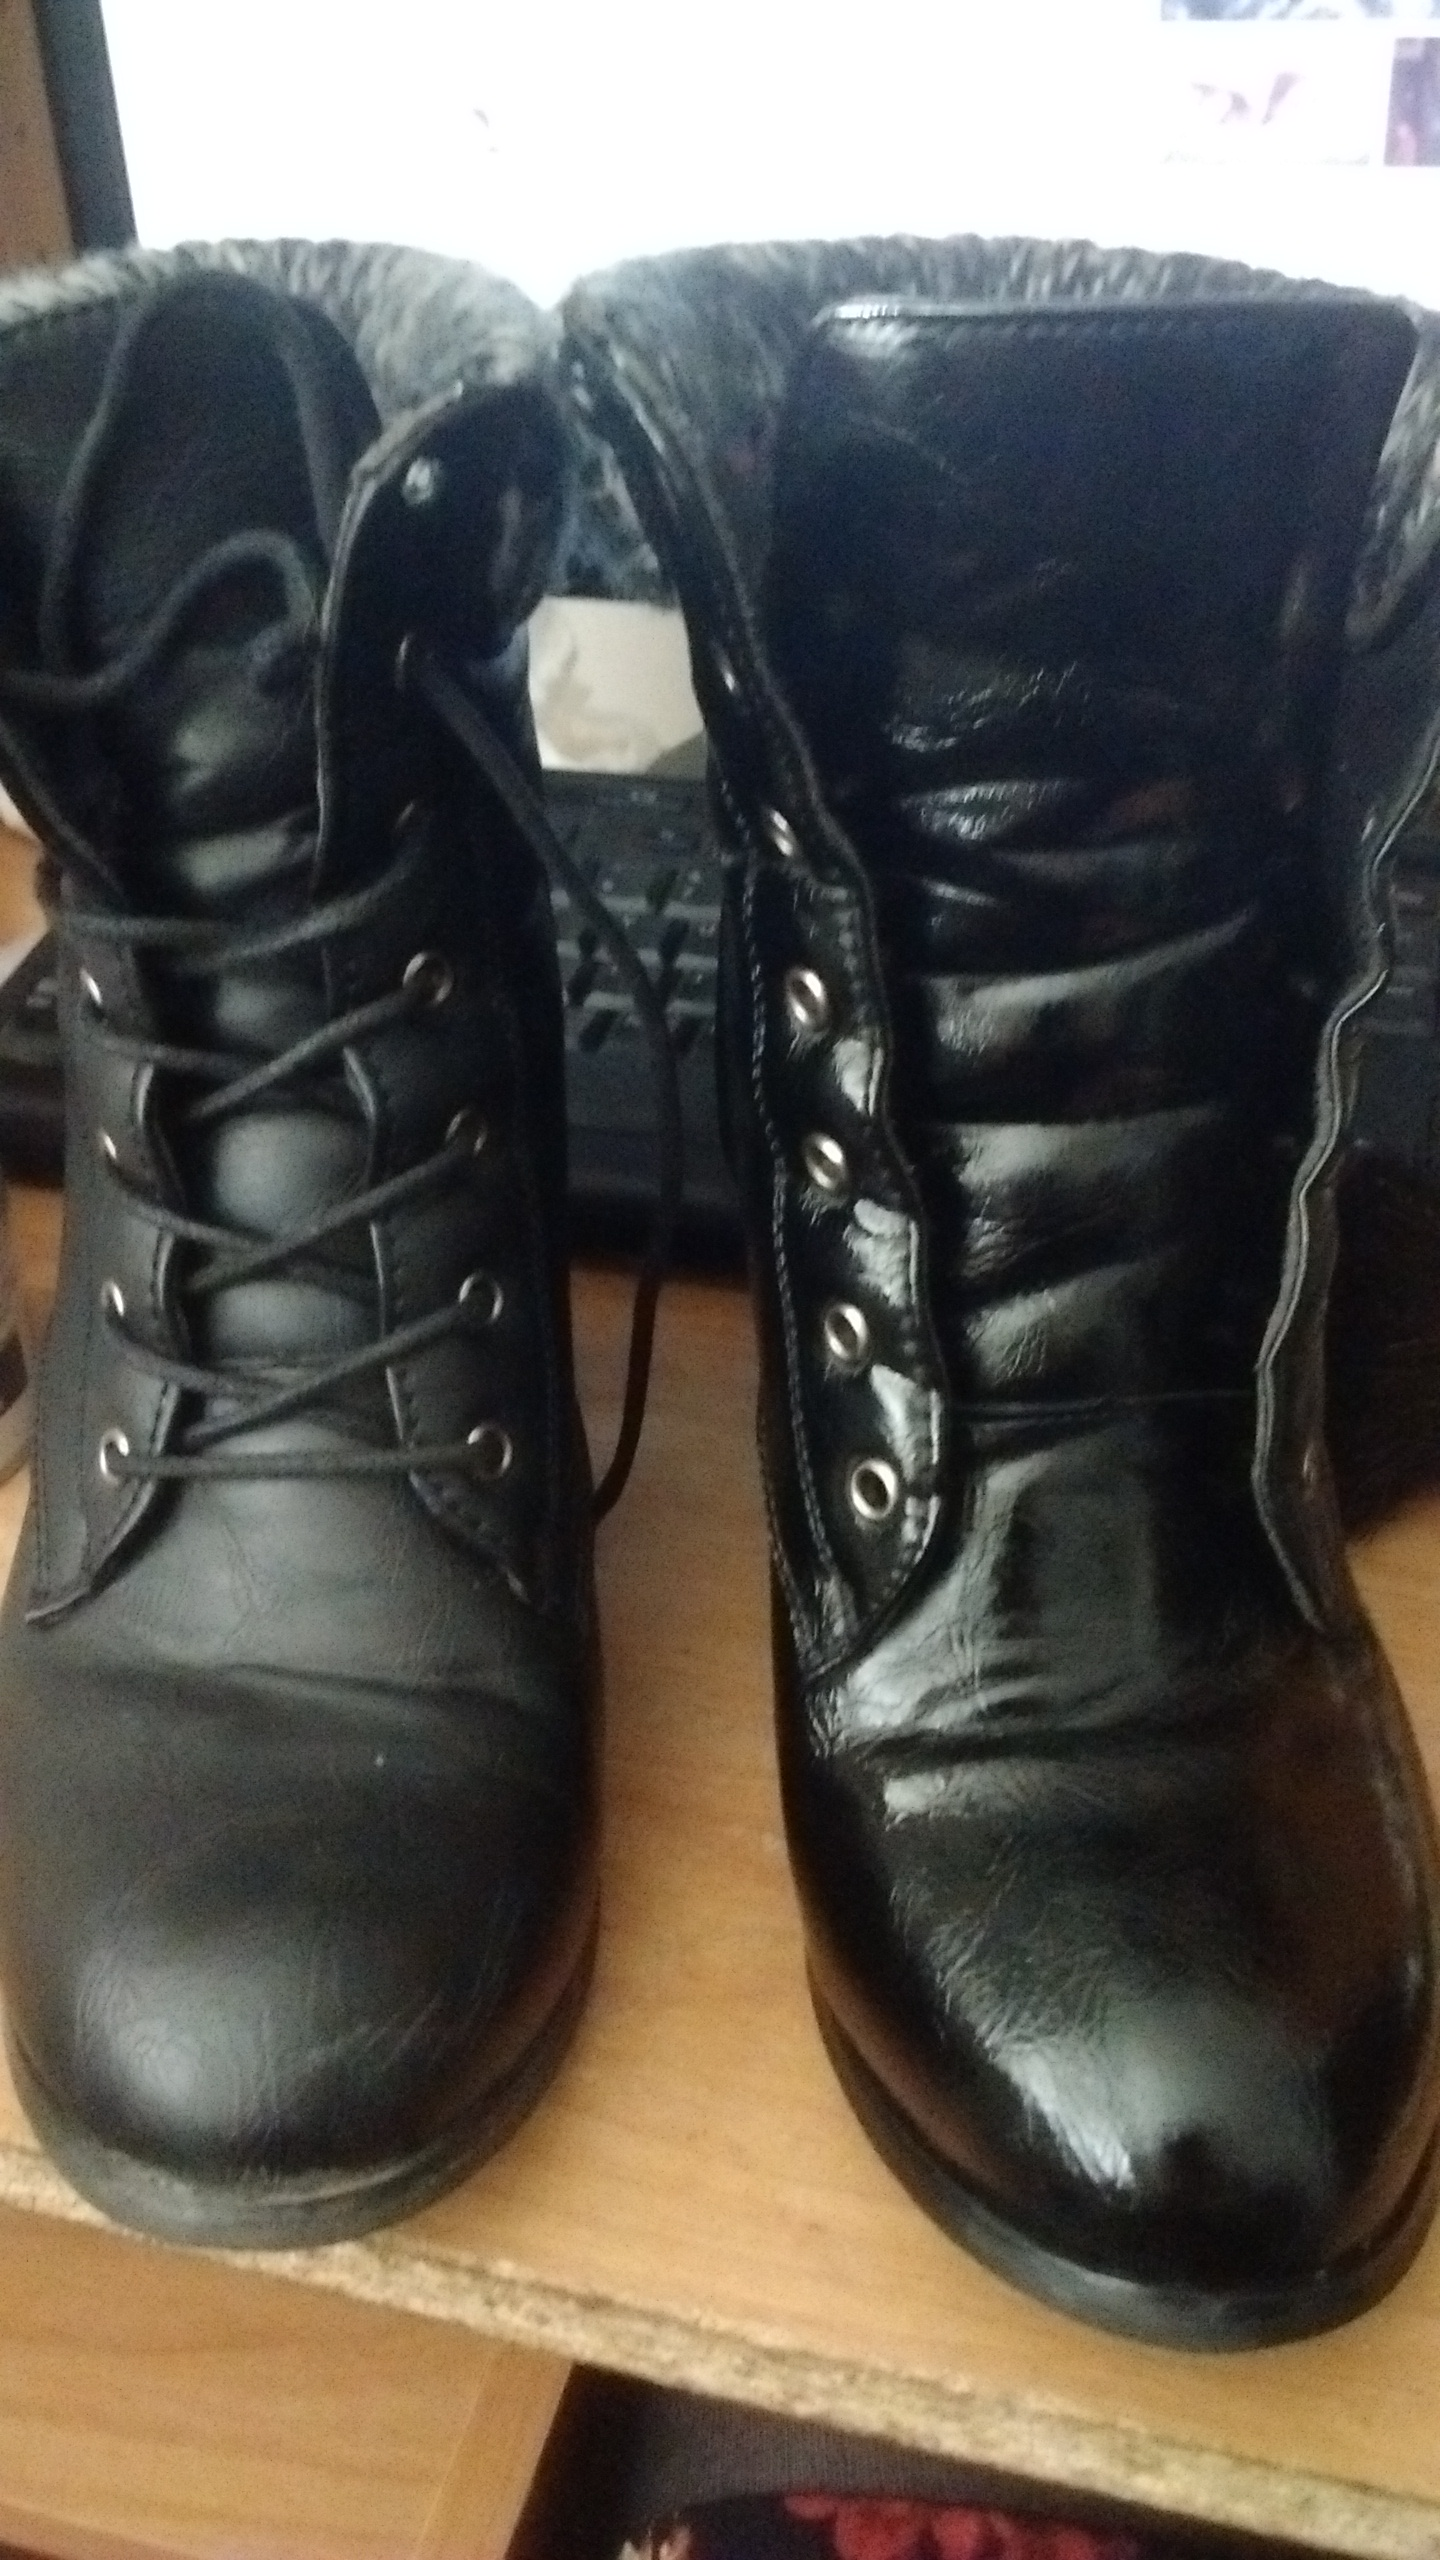 My sassy boots. Left: Before. Right: After